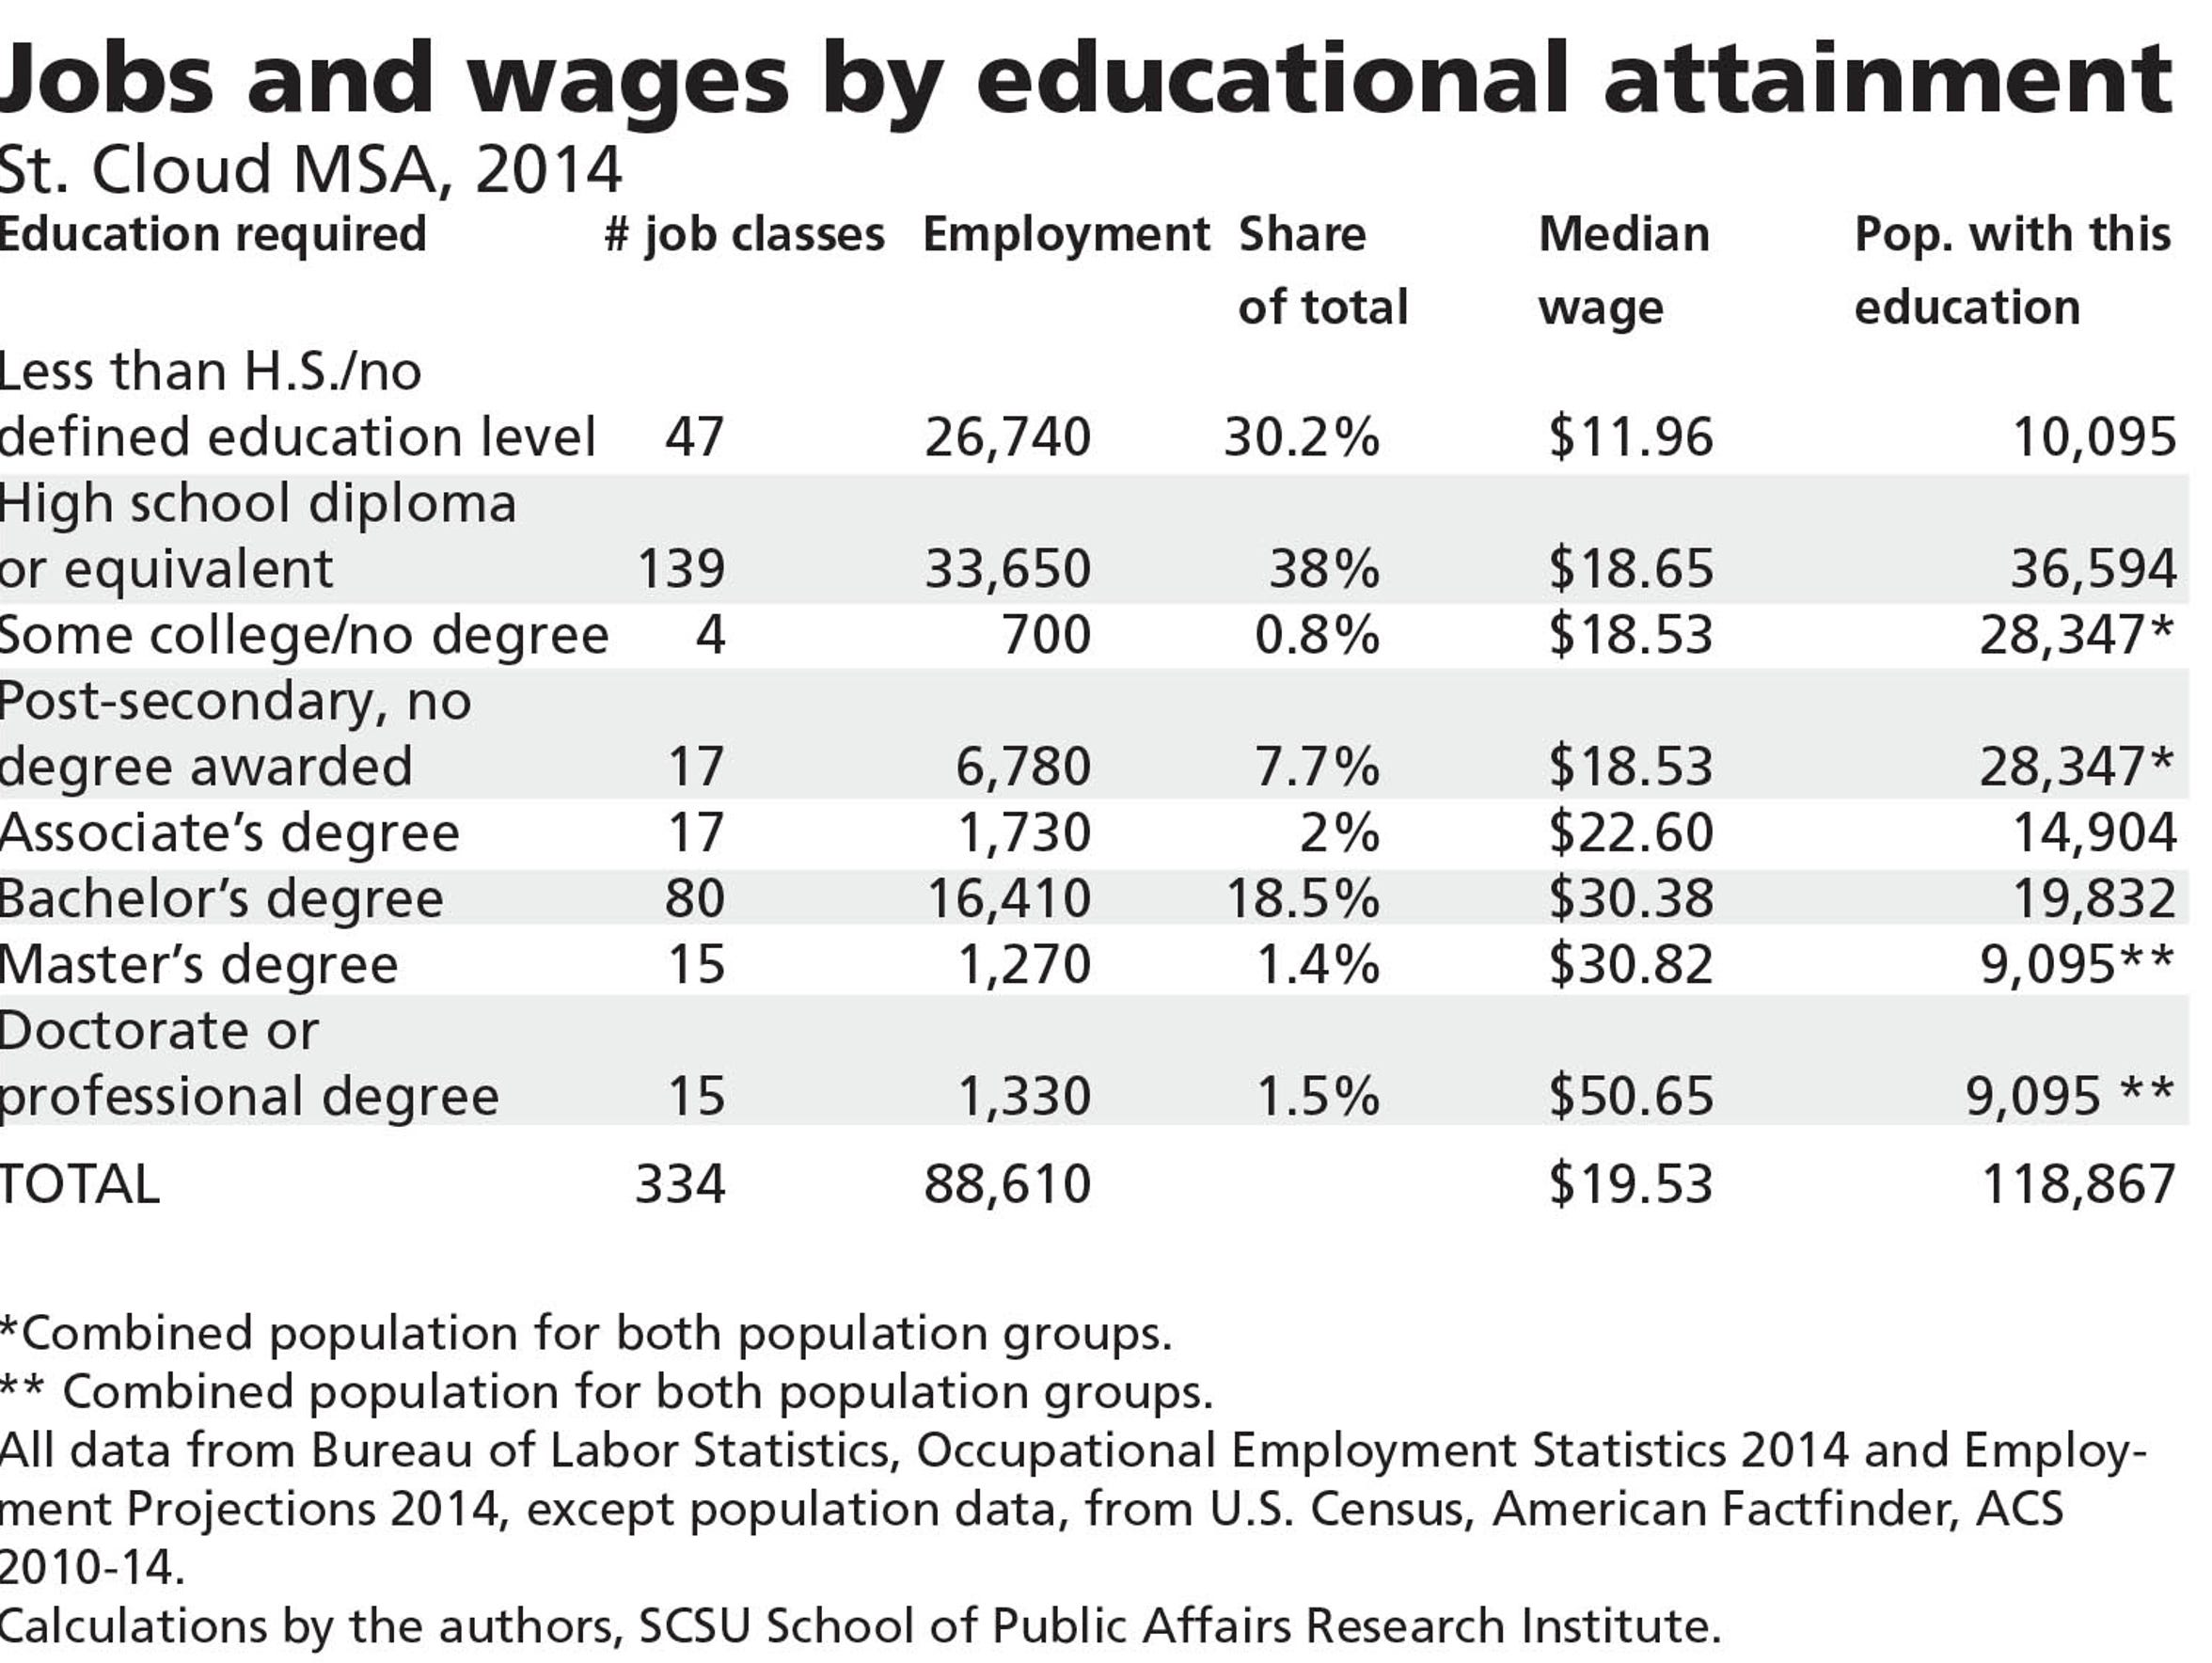 Jobs and education